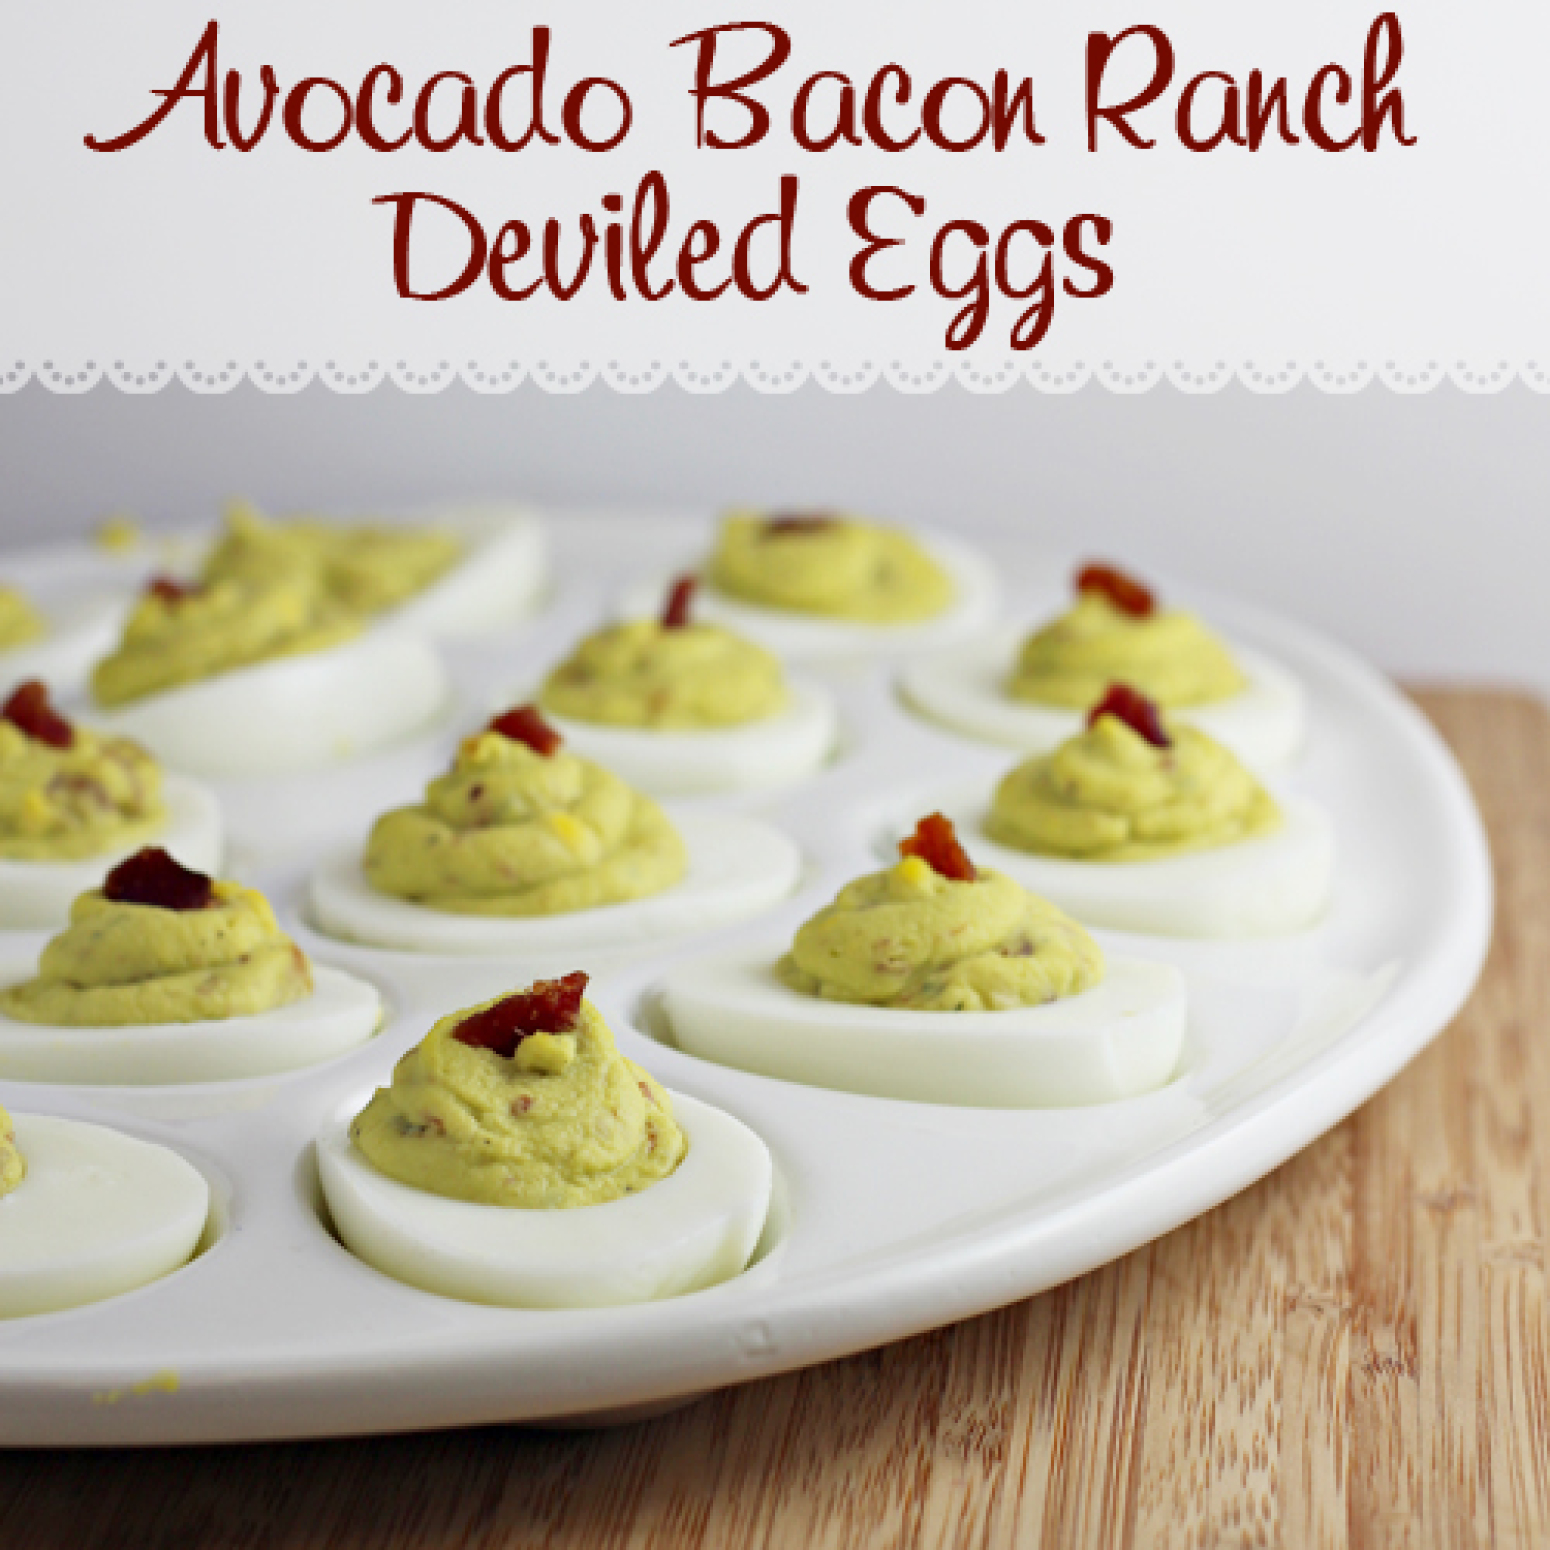 Avocado Bacon Ranch Deviled Eggs Recipe 2 | Just A Pinch ...